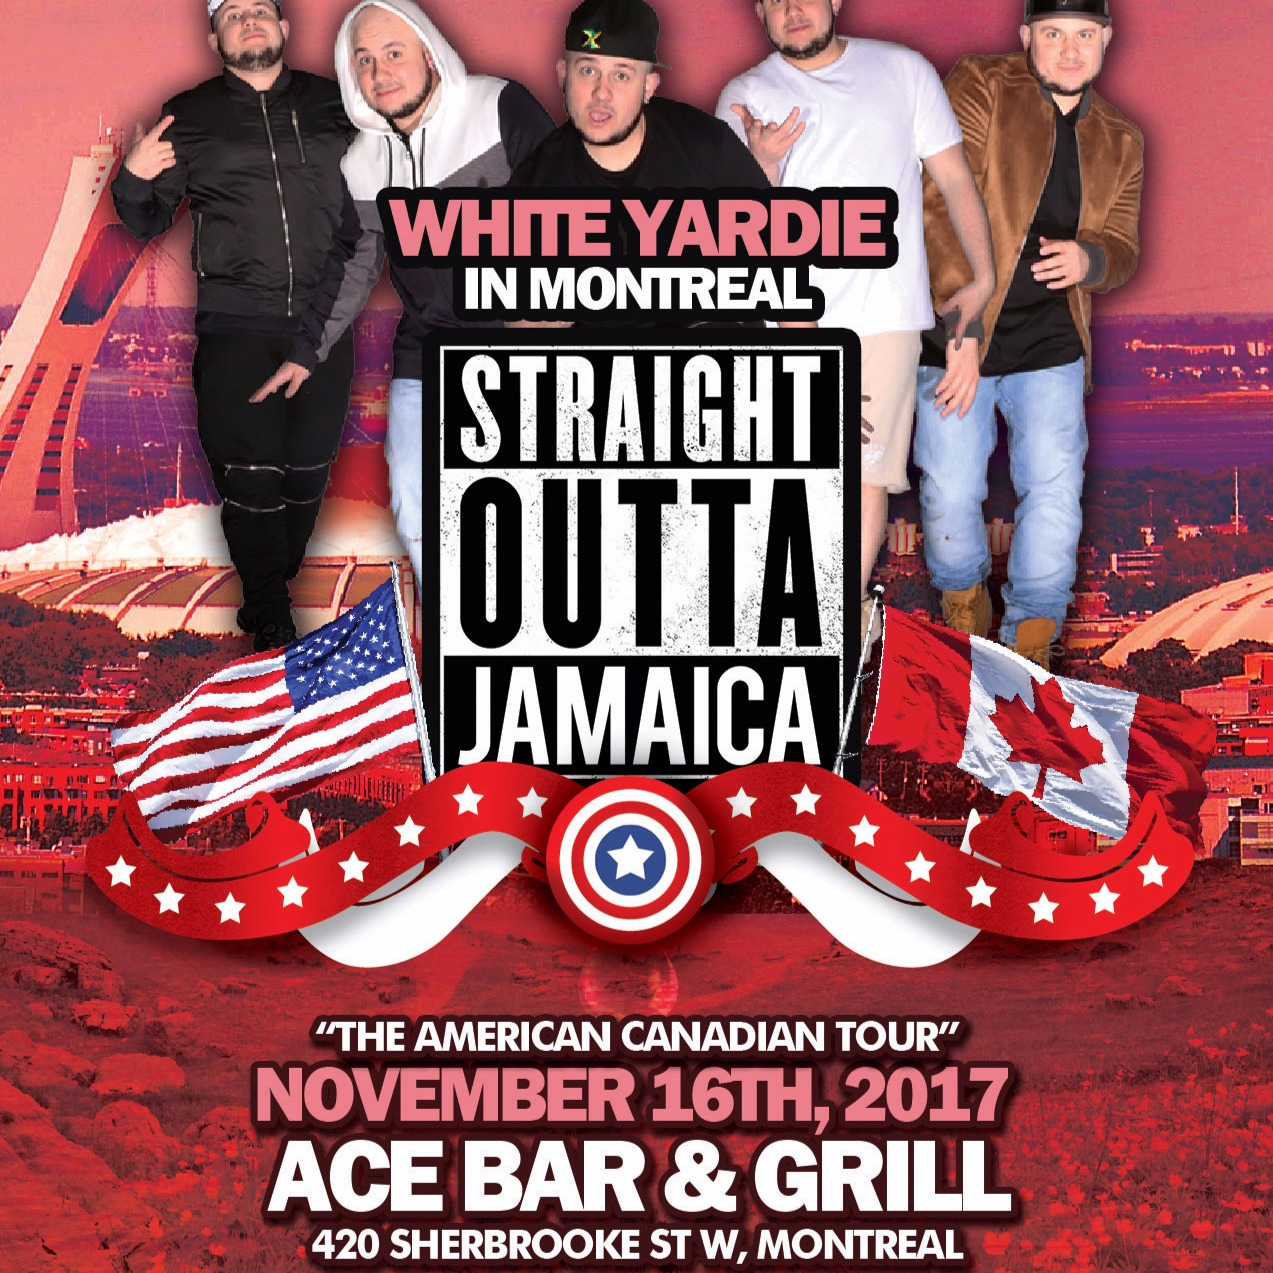 White Yardie & JUICE Comedy present STRAIGHT OUTTA JAMAICA TOUR - Montreal